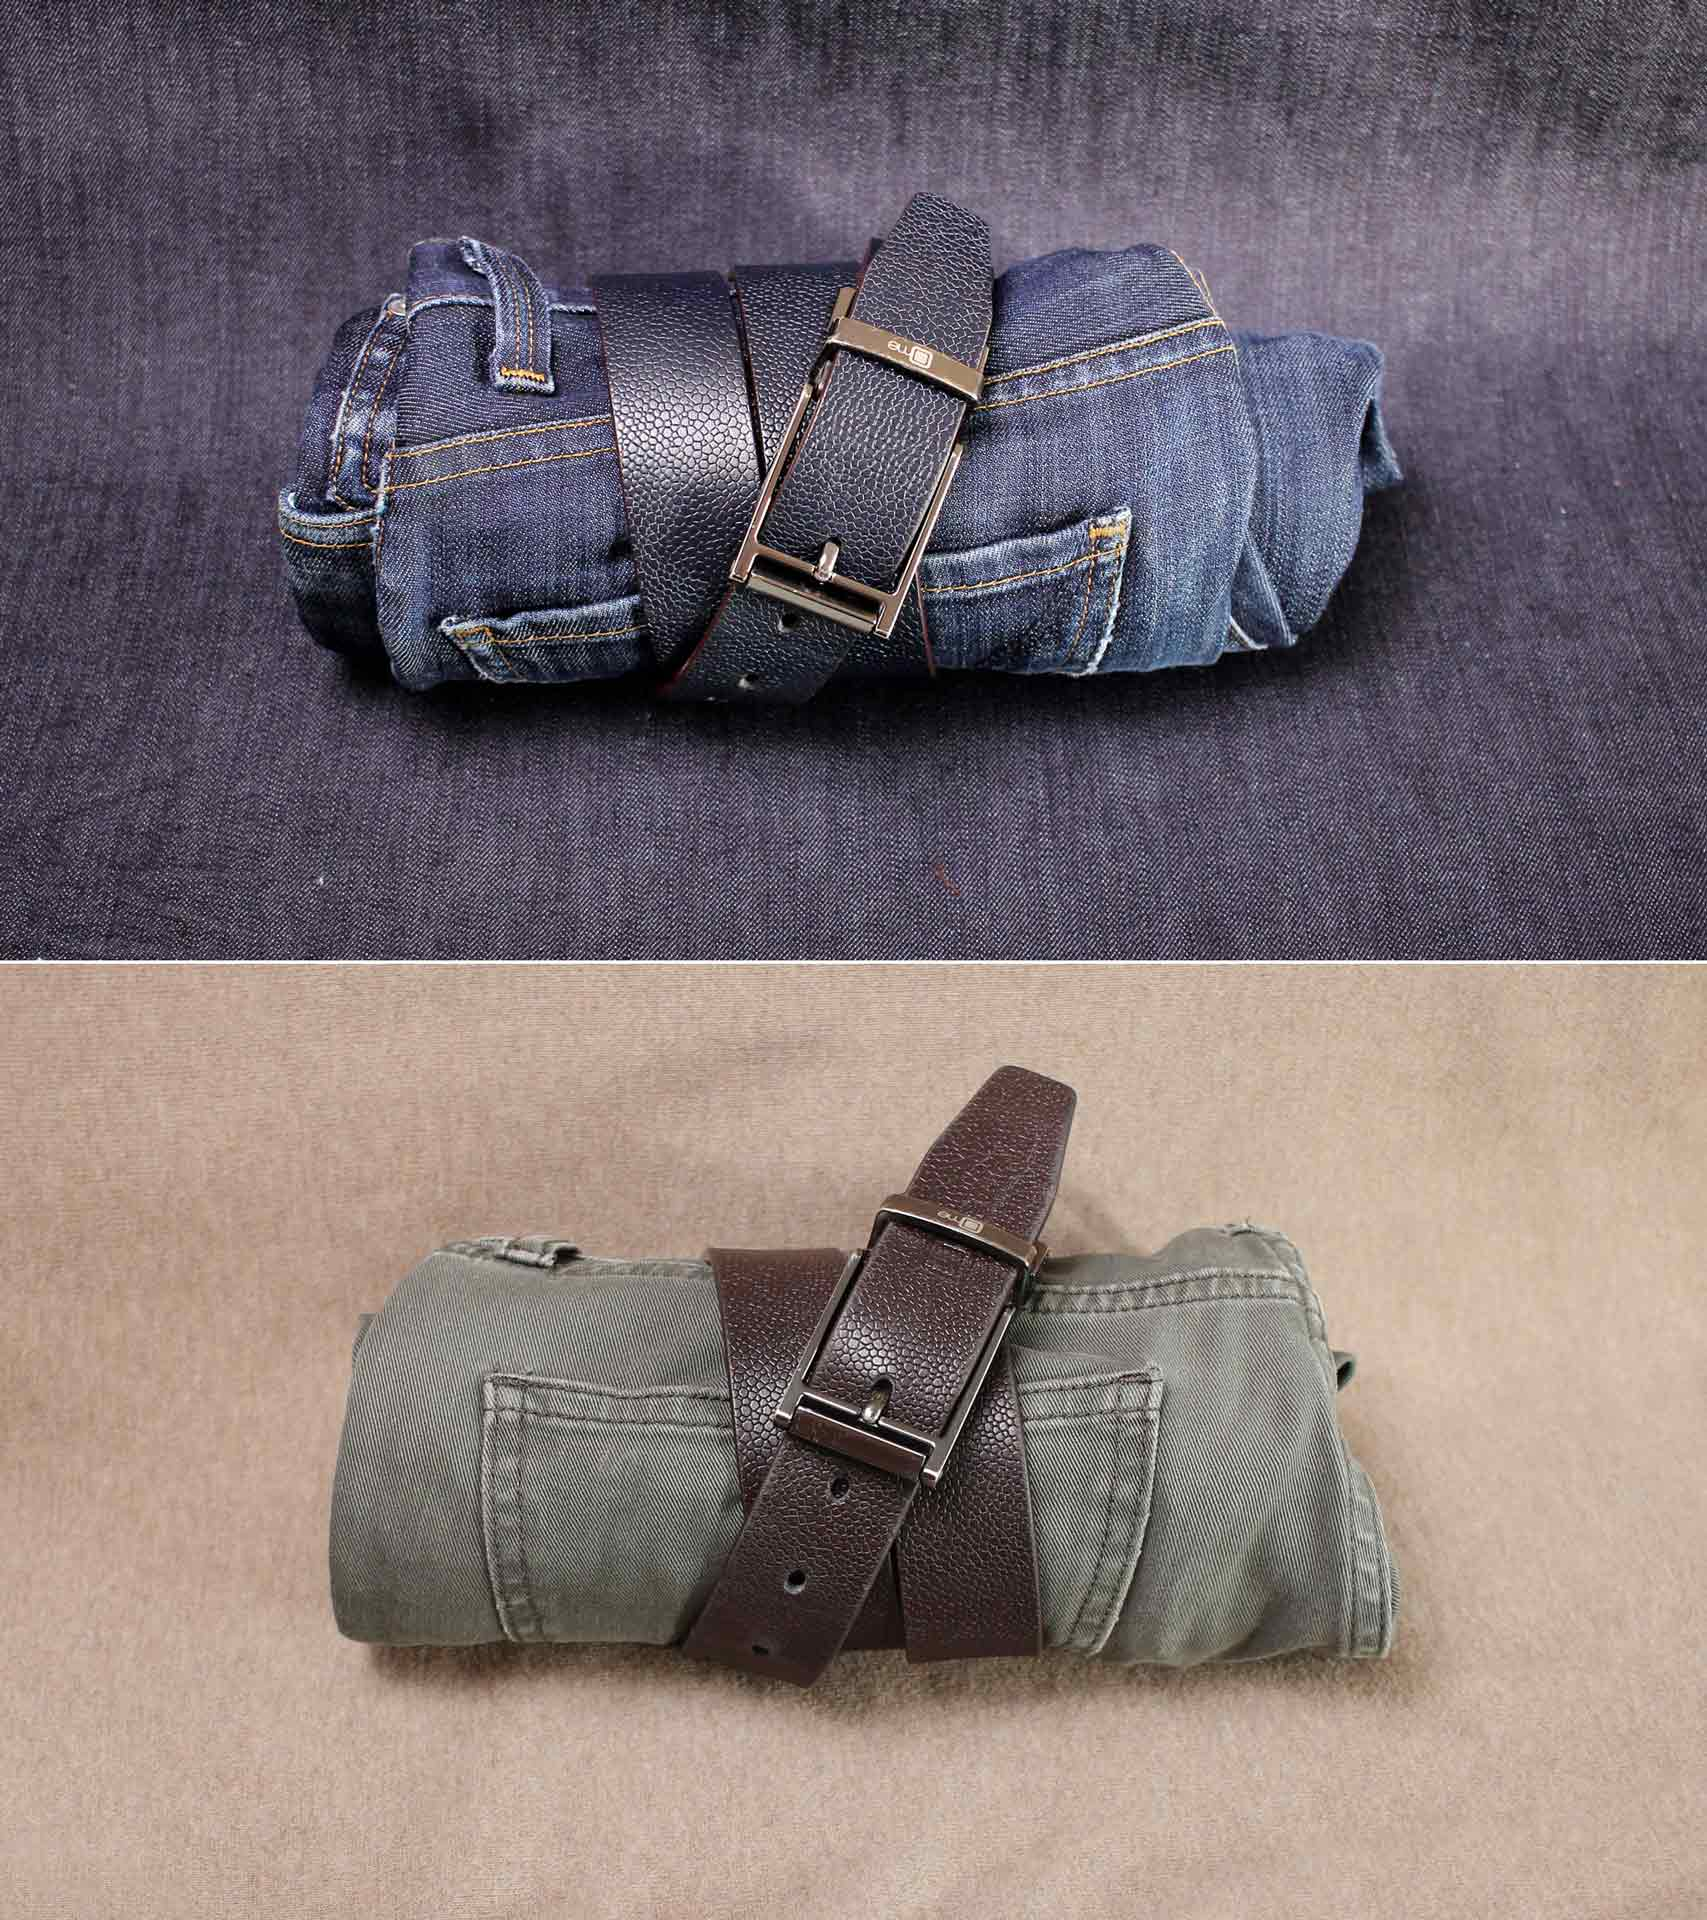 A double sided navy blue and brown belt